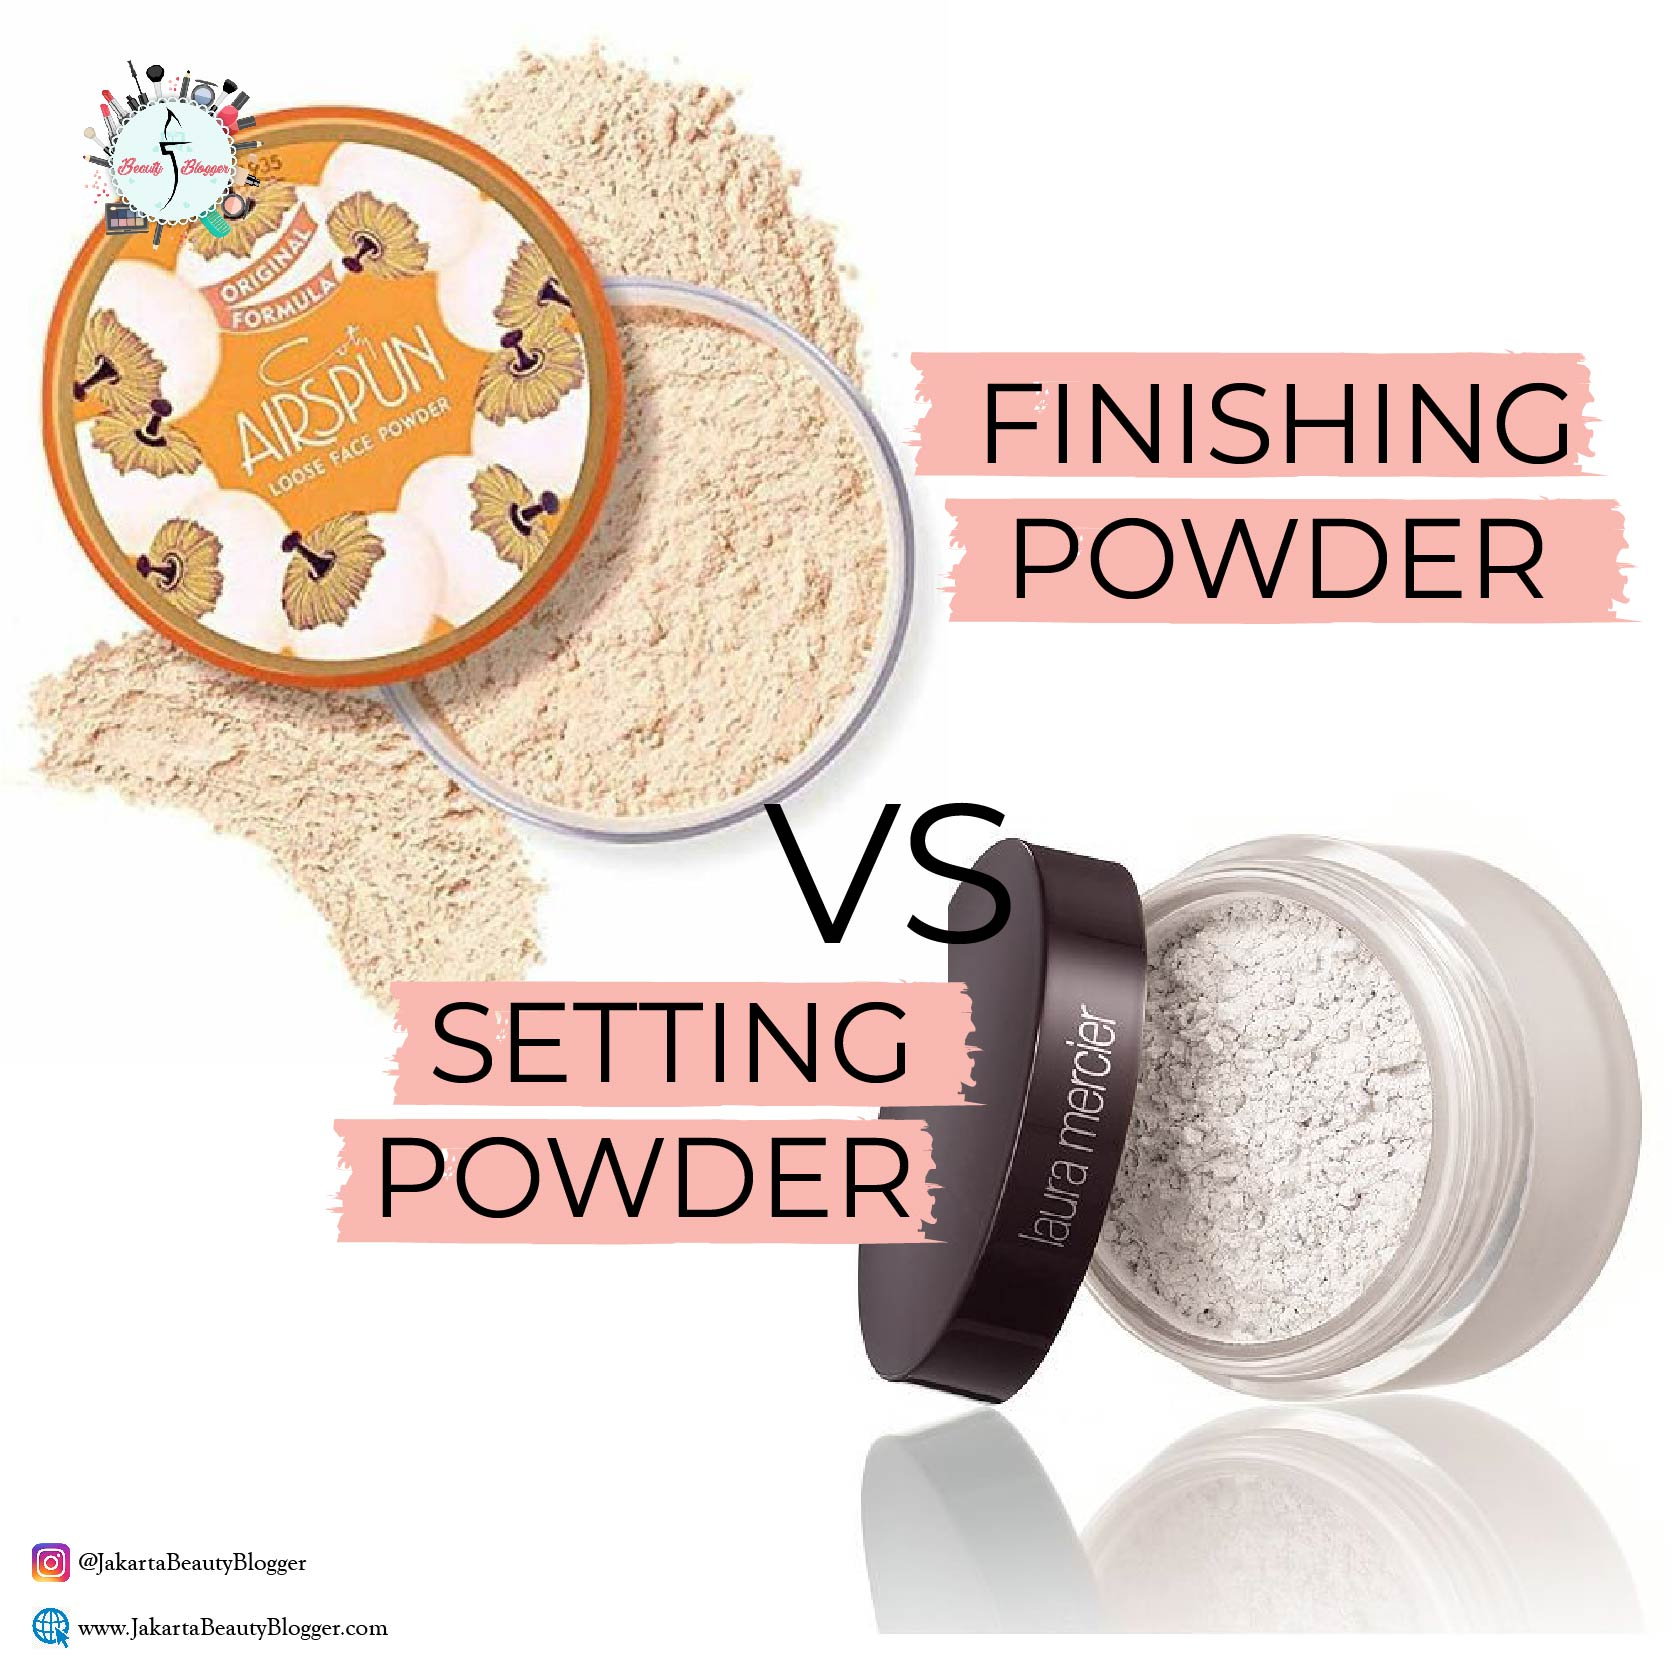 SETTING POWDER VS FINISHING POWDER